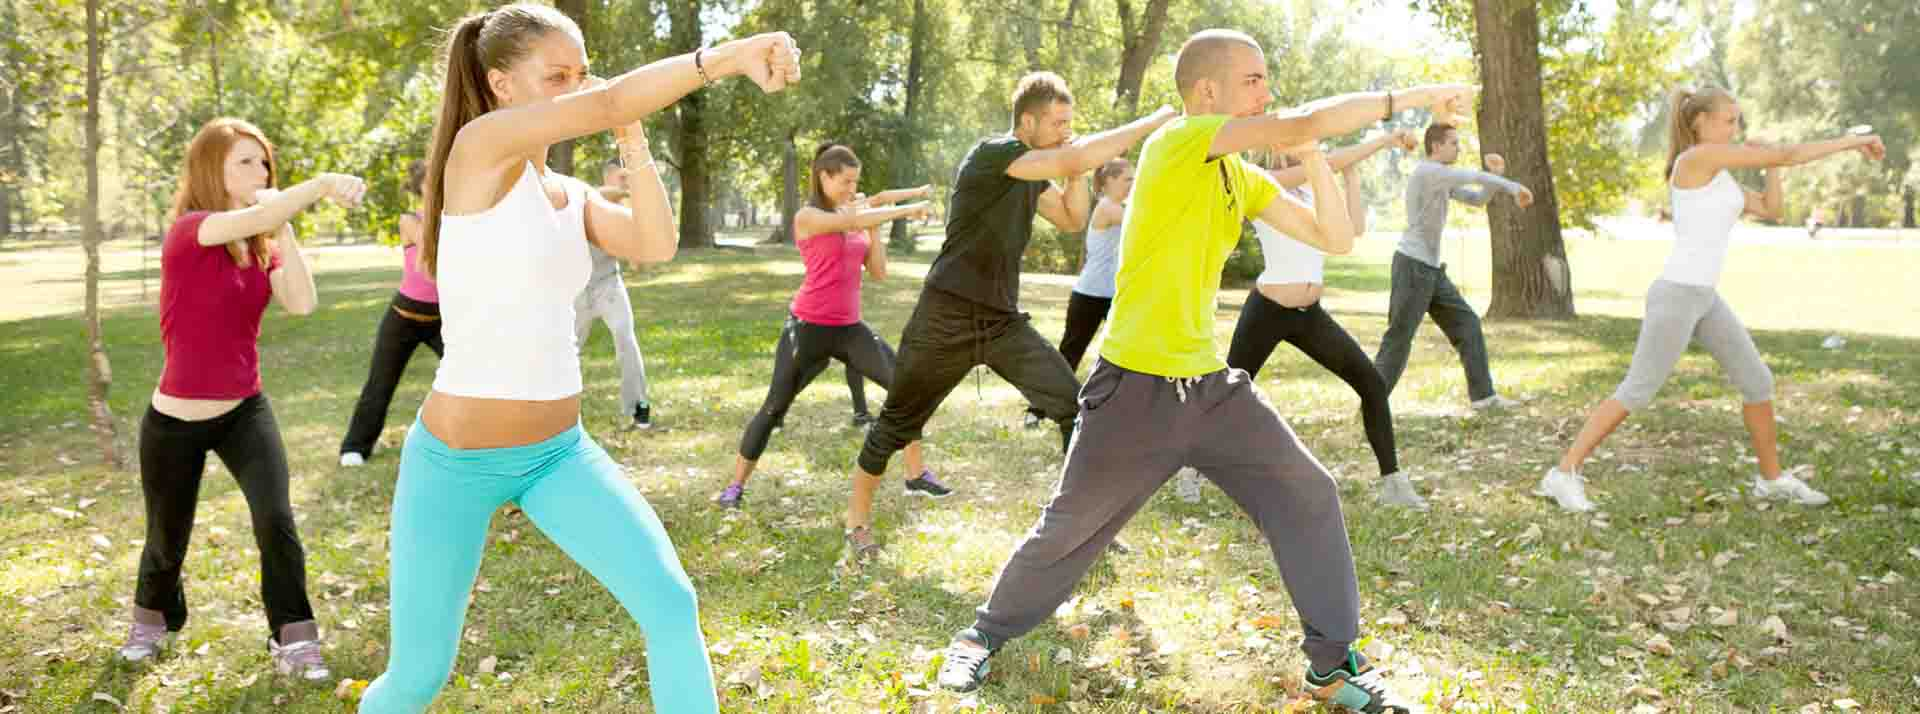 Fighting Fit - Aerobic mit Kampfsport